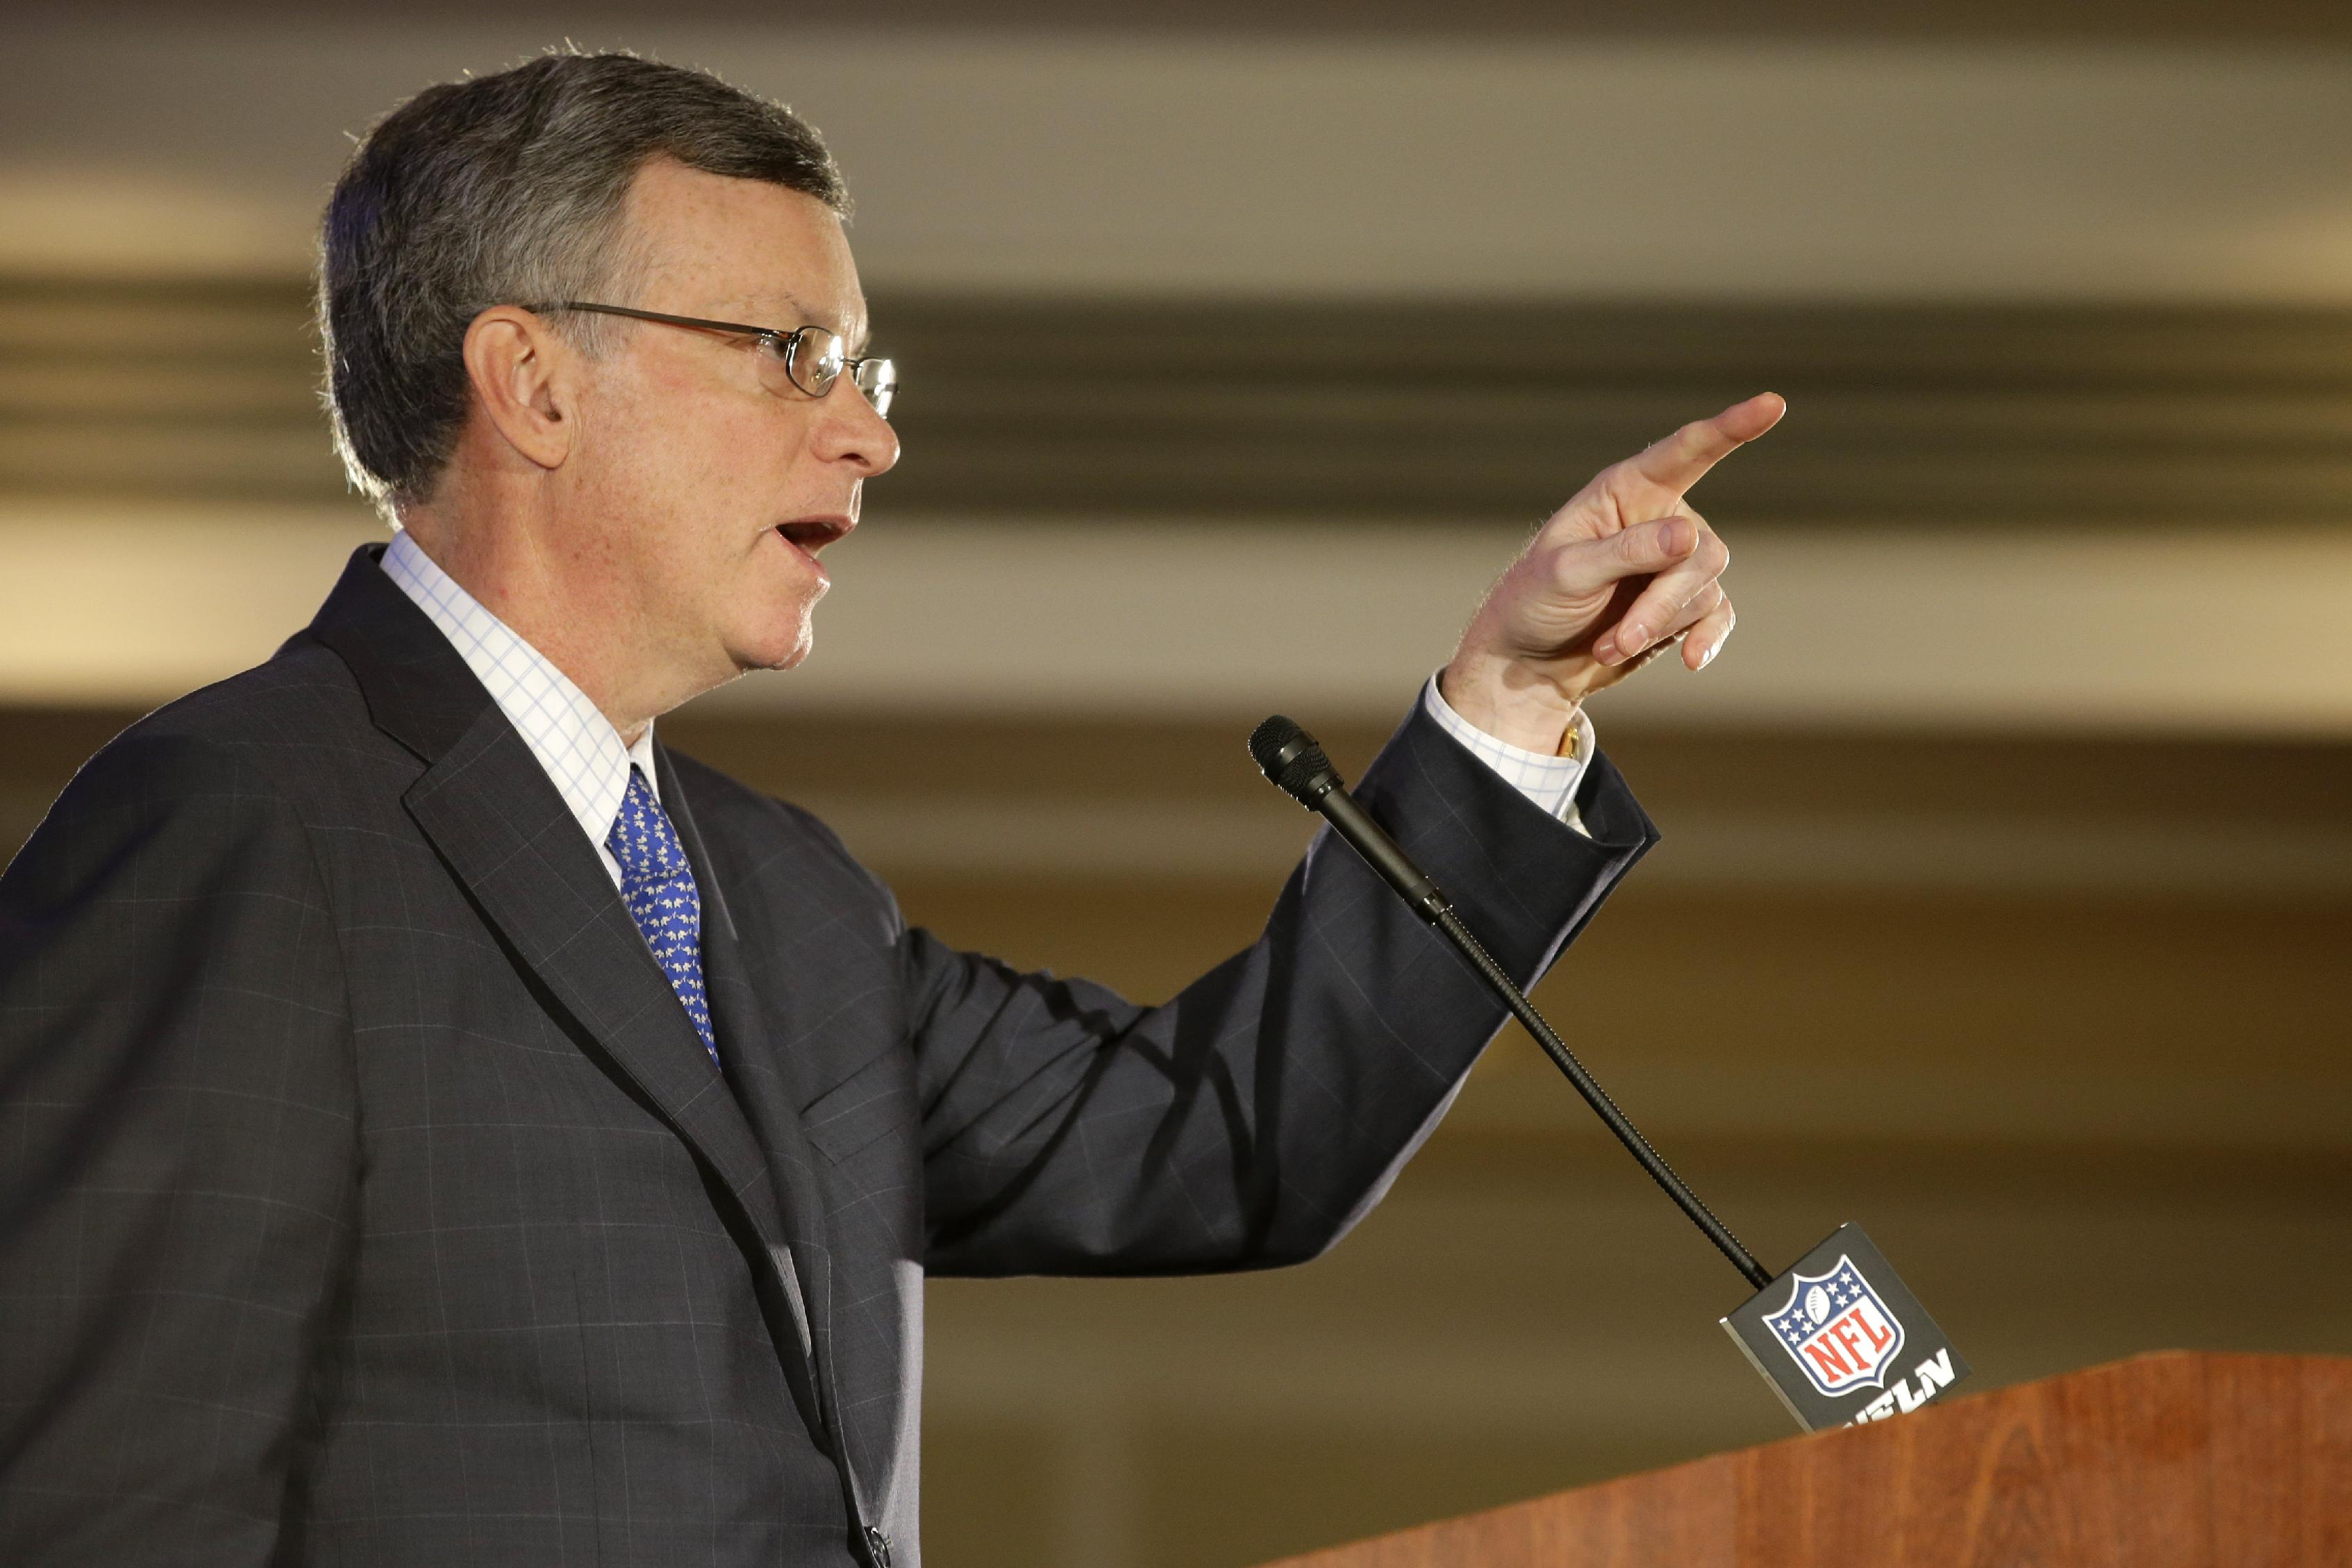 Super Bowl co-chair wants game back in area again